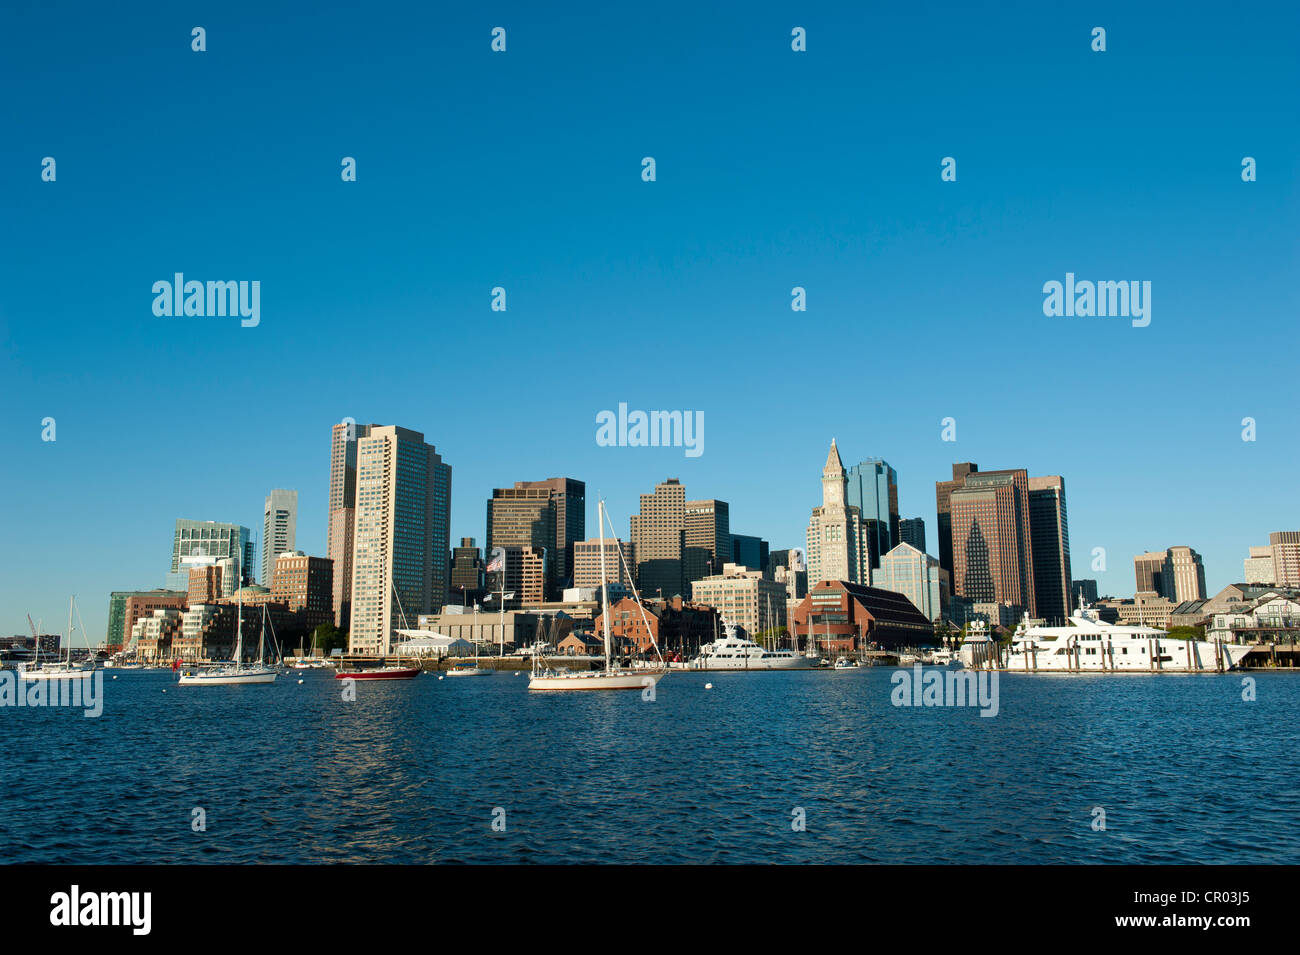 Entire skyline with Custom House Tower, Financial District, Long Wharf, view from Boston Harbour, Boston, Massachusetts - Stock Image